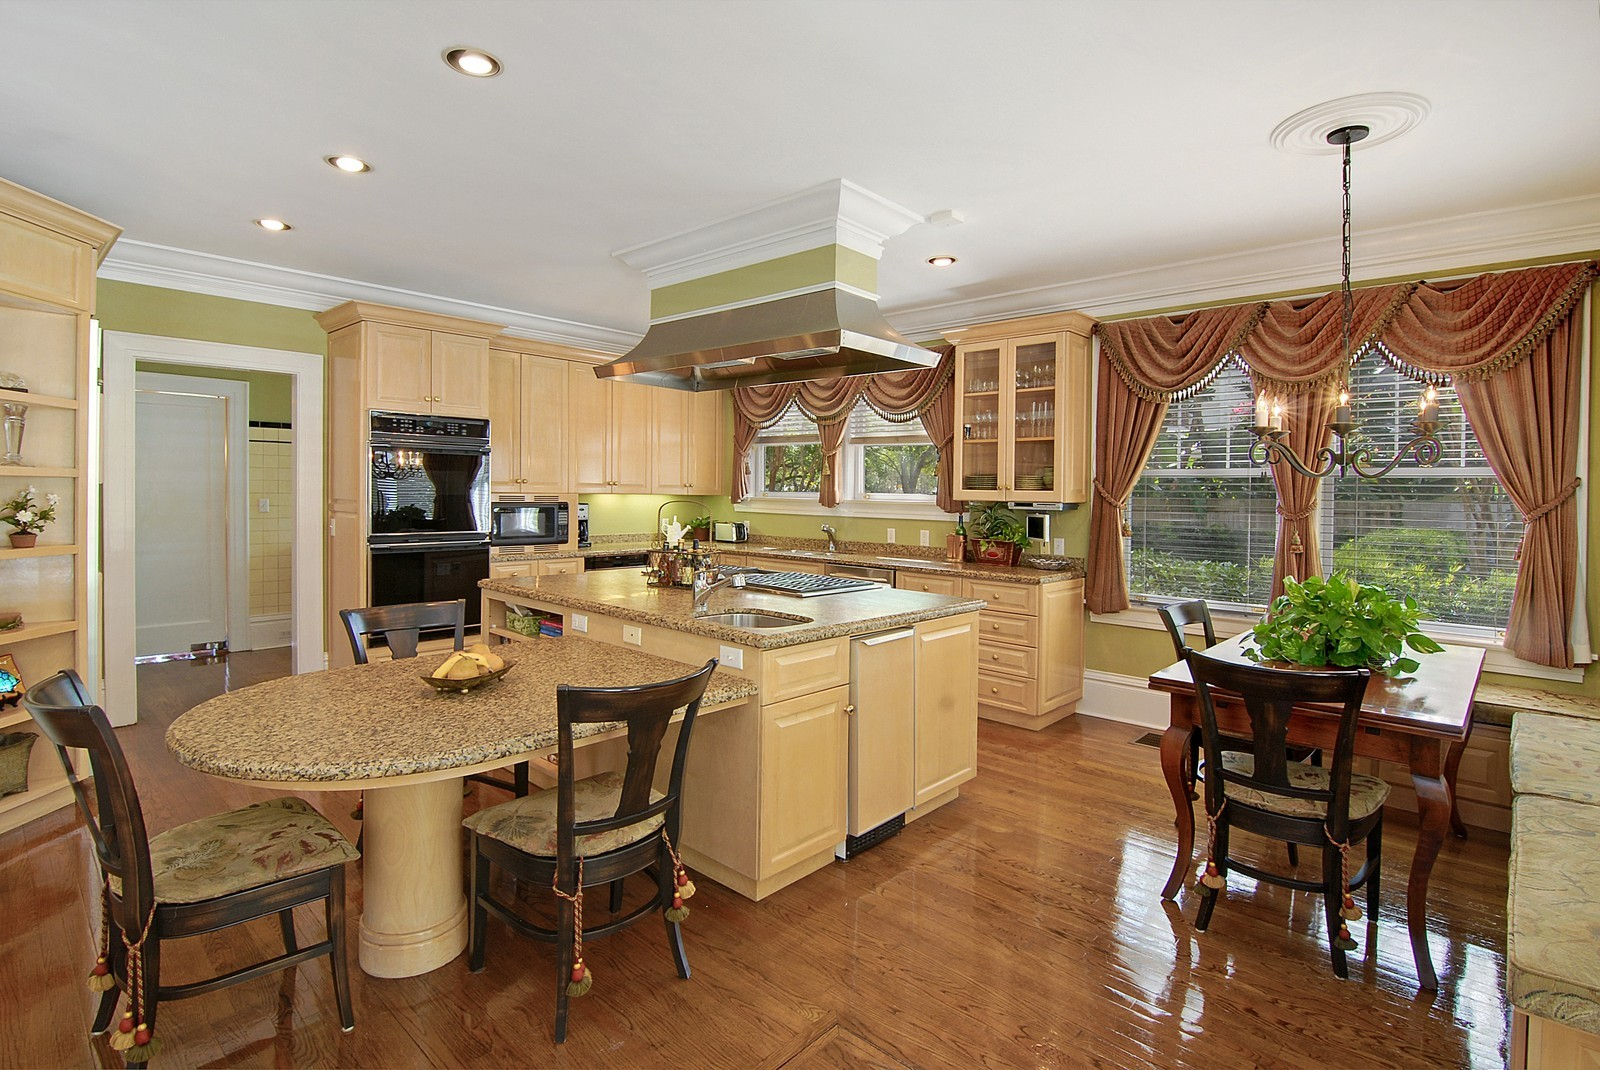 Real Estate Photography - 2223 S. Bendelow Trail, Tampa, FL, 33629 - Kitchen